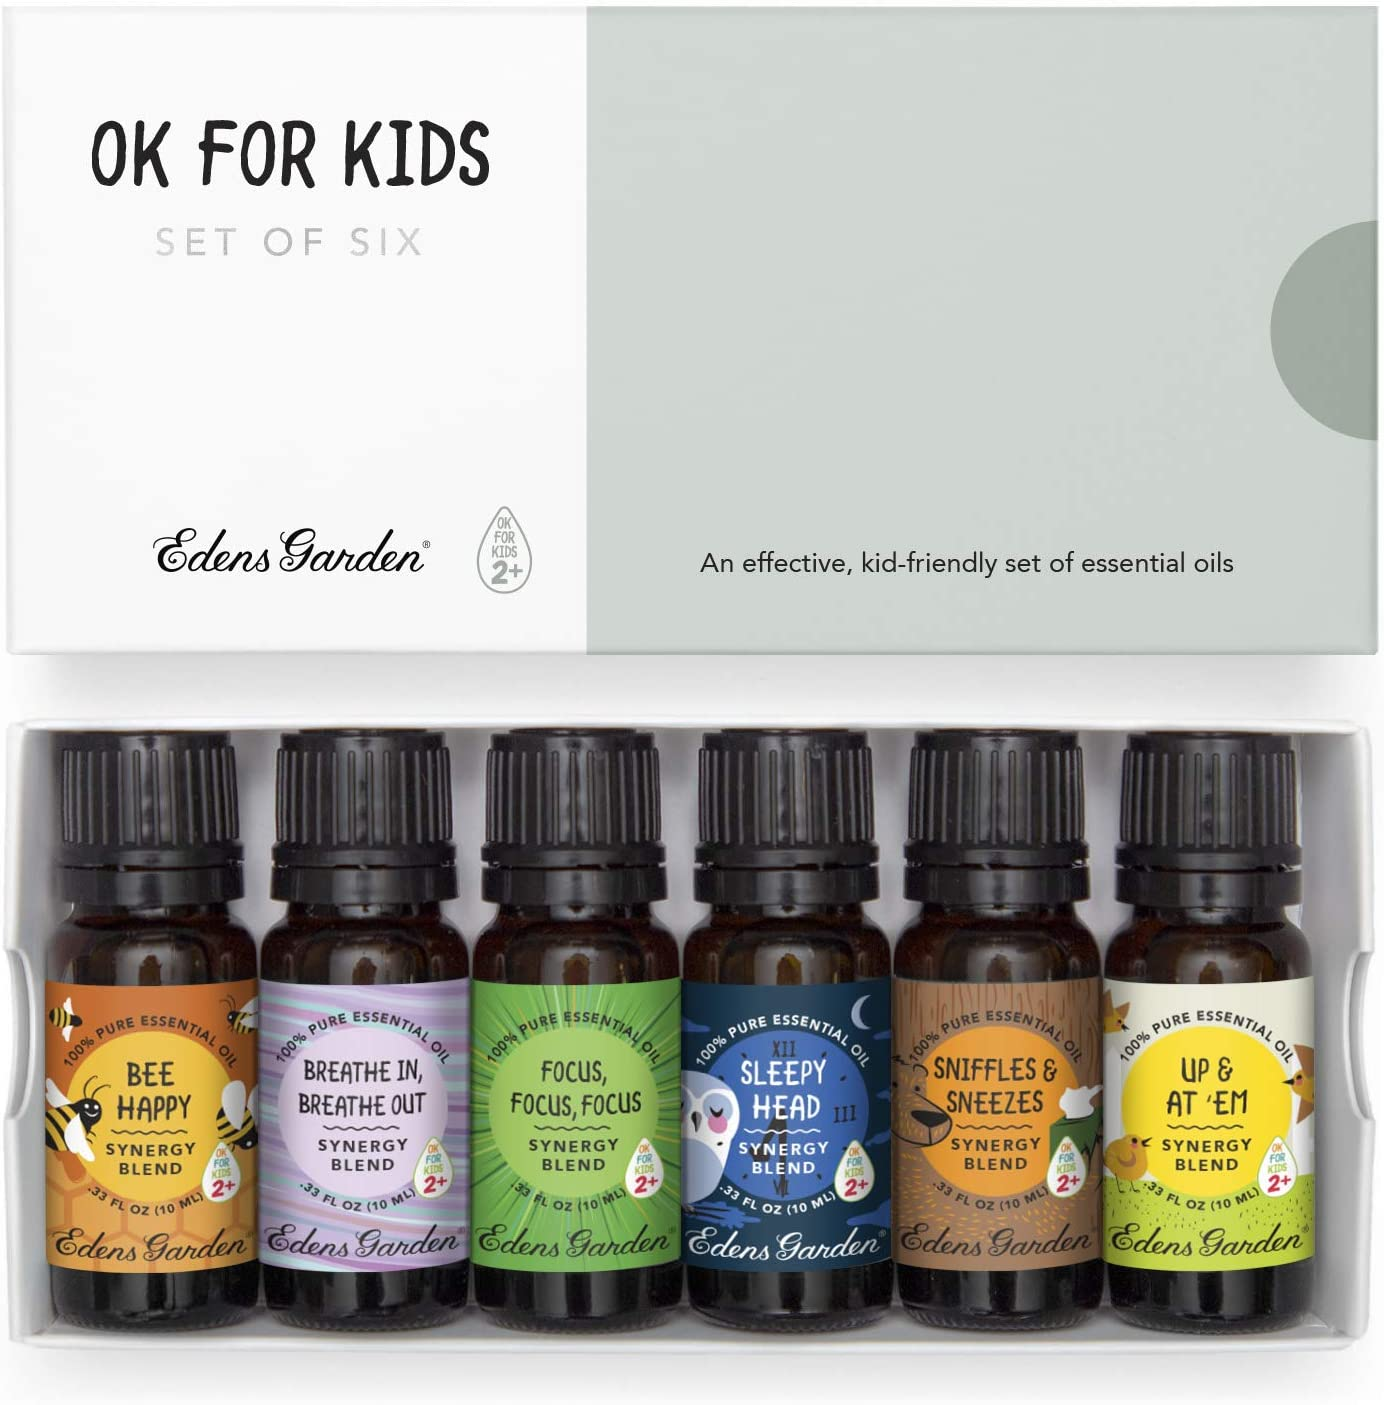 "Edens Garden""OK for Kids"" 6 Set, Best 100% Pure Essential Oil Synergy Blend Aromatherapy Starter Kit (Child Safe 2+, for Diffuser & Therapeutic Use), 10 ml"